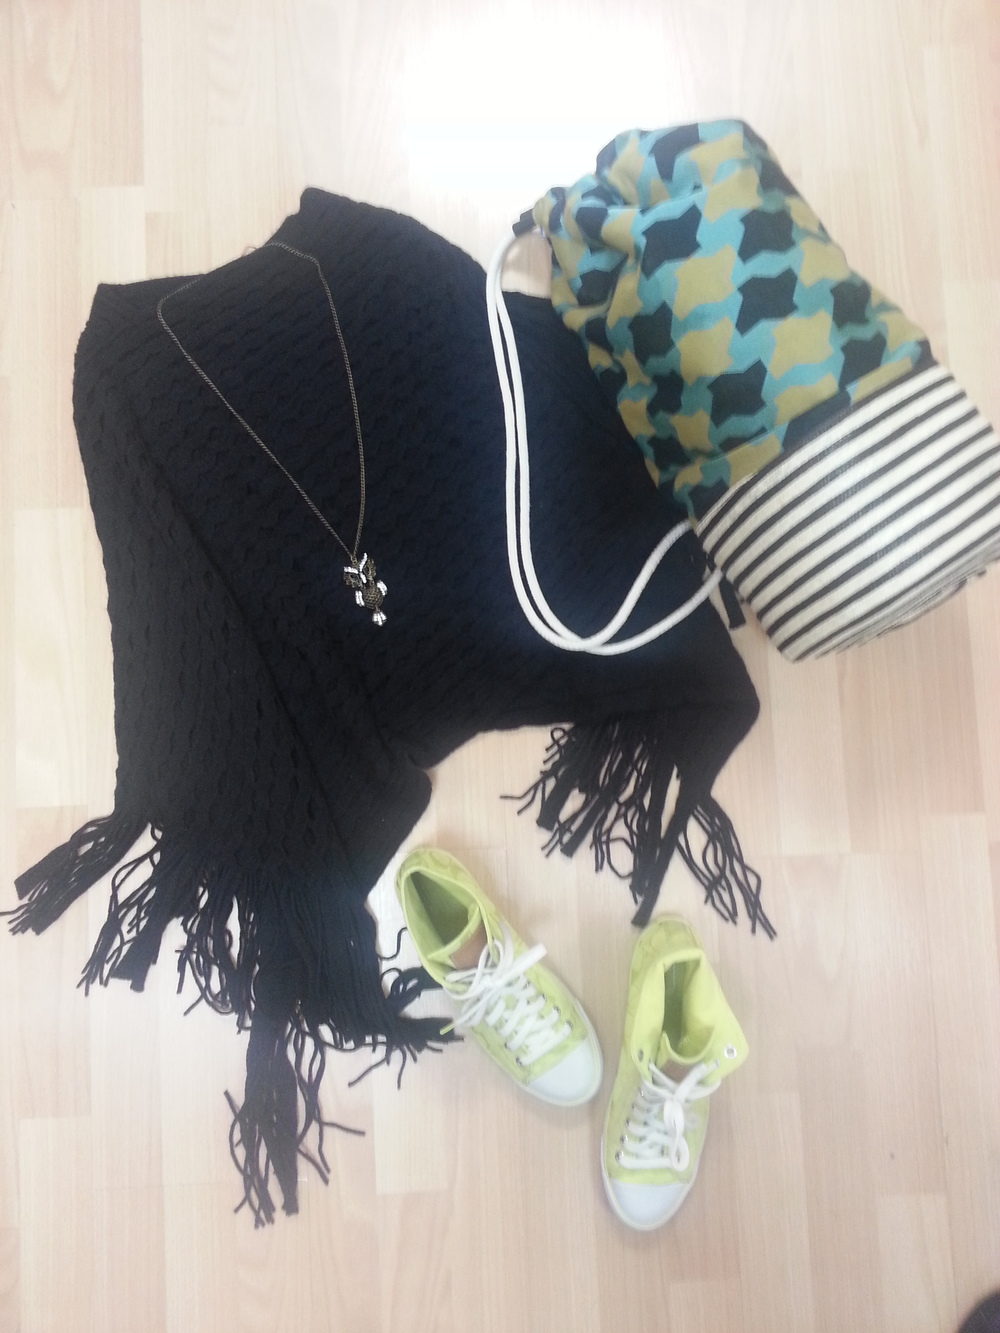 High top sneakers, black waffle weave fringe poncho, fun owl necklace, colorful Marni tote for your local market finds